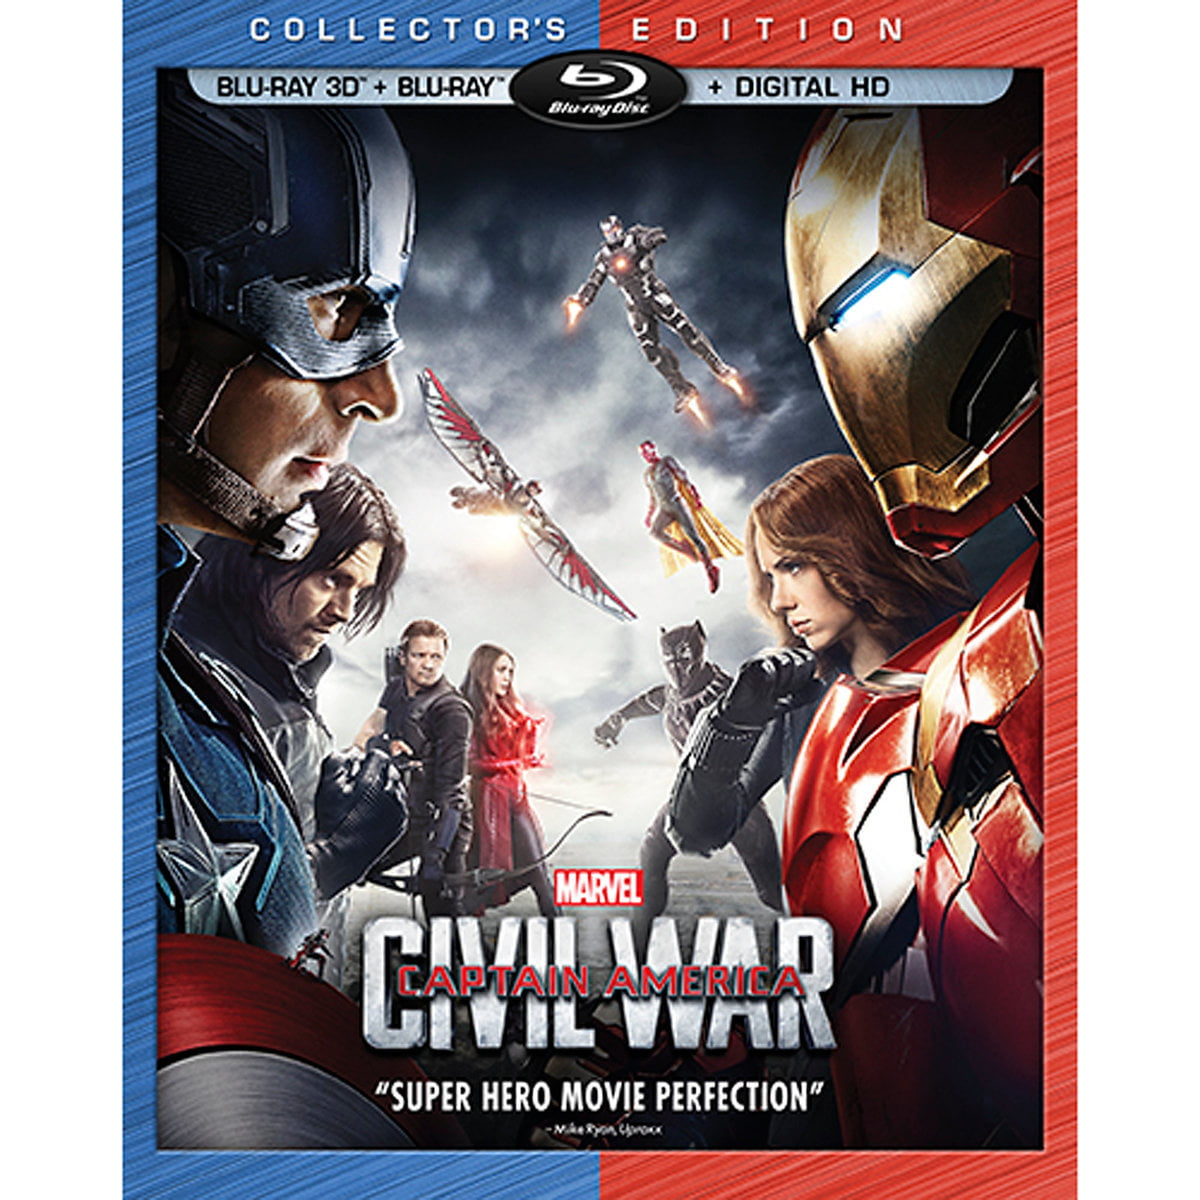 Captain America: Civil War (Collector's Edition) (Blu-ray 3D + Blu-ray + Digital HD) by MARVEL